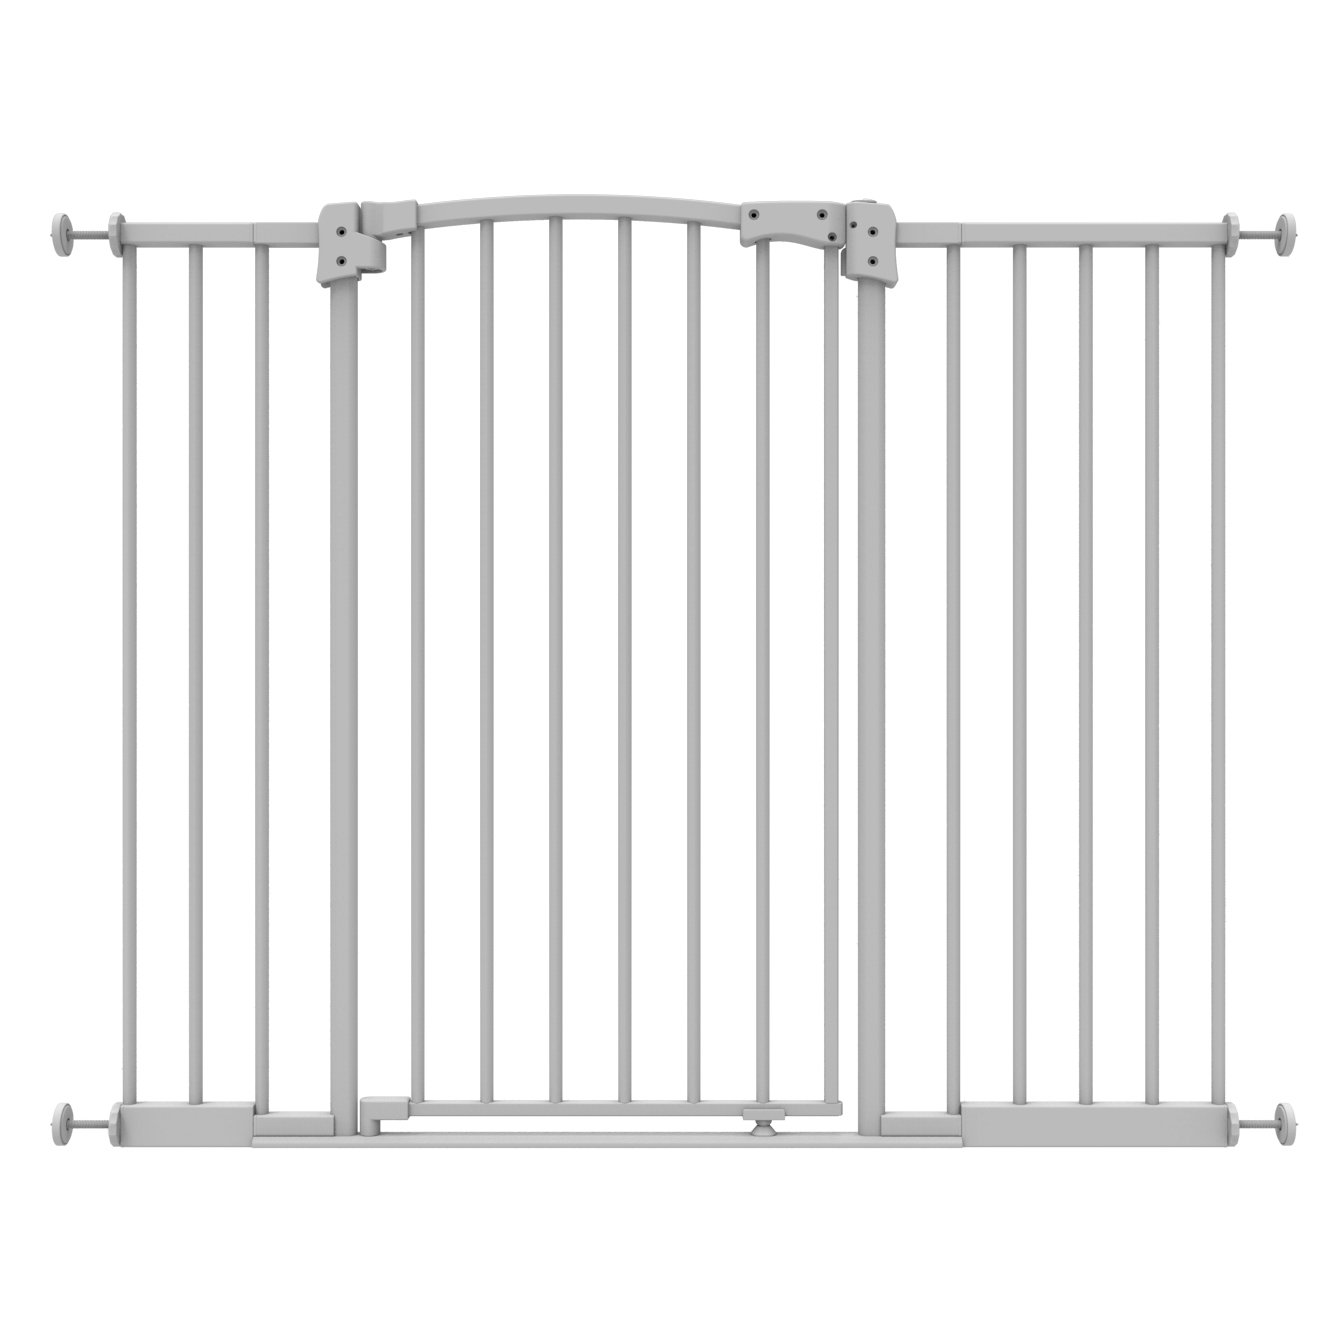 Perma Safe Step Baby Gate, Pressure Mounted, Extra Wide & Extra Tall, White